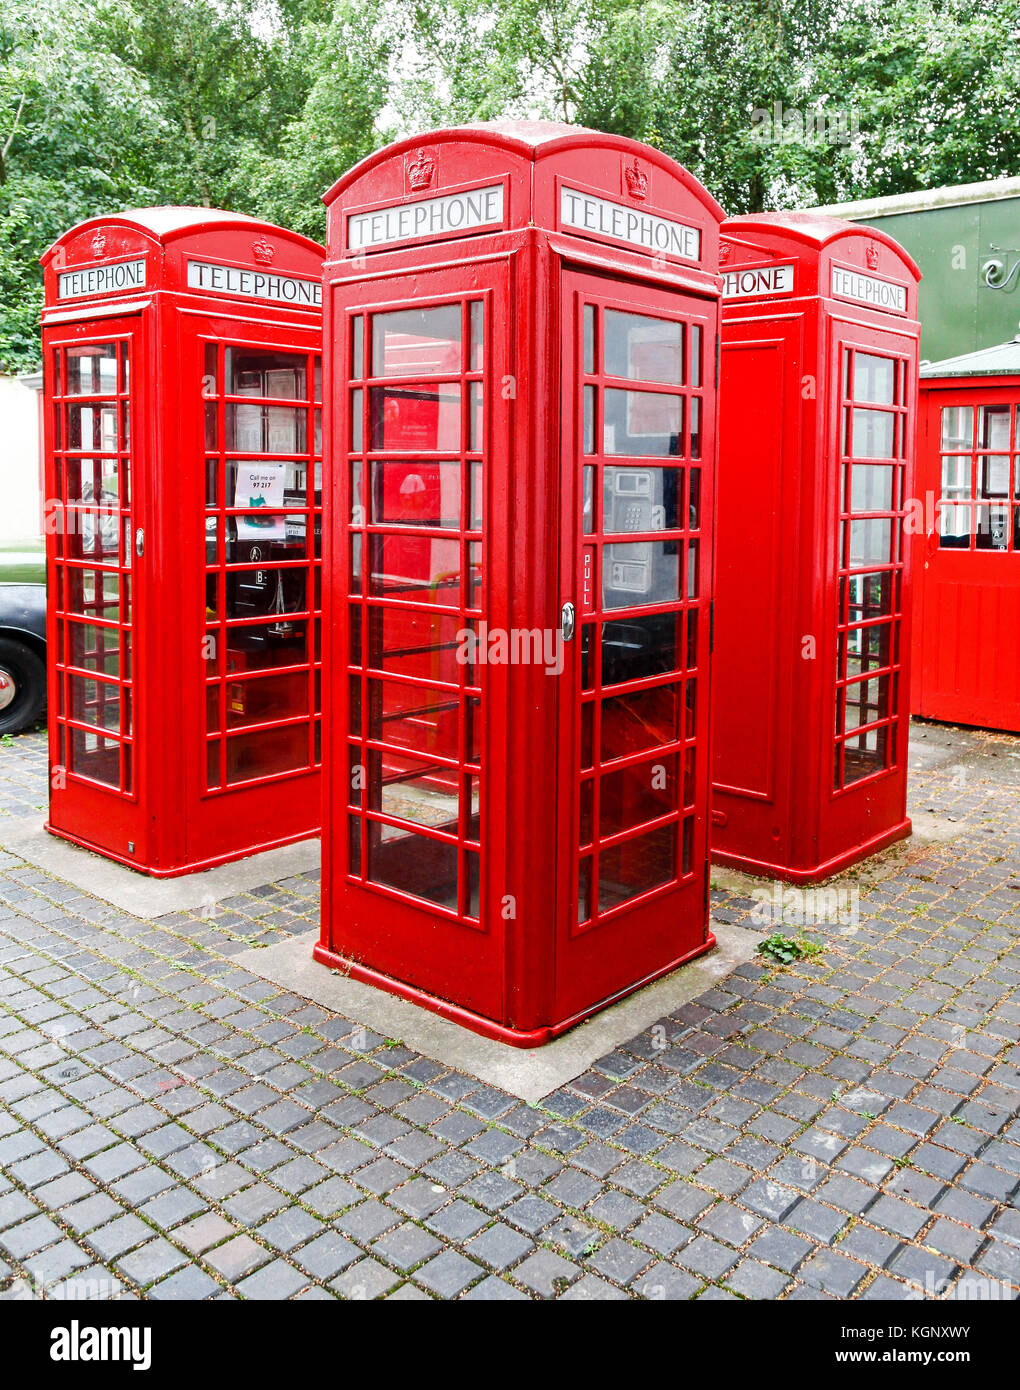 K6 phone boxes at the National Telephone Kiosk Collection at the Avoncroft Museum of Buildings, Stoke Heath, Bromsgrove, - Stock Image